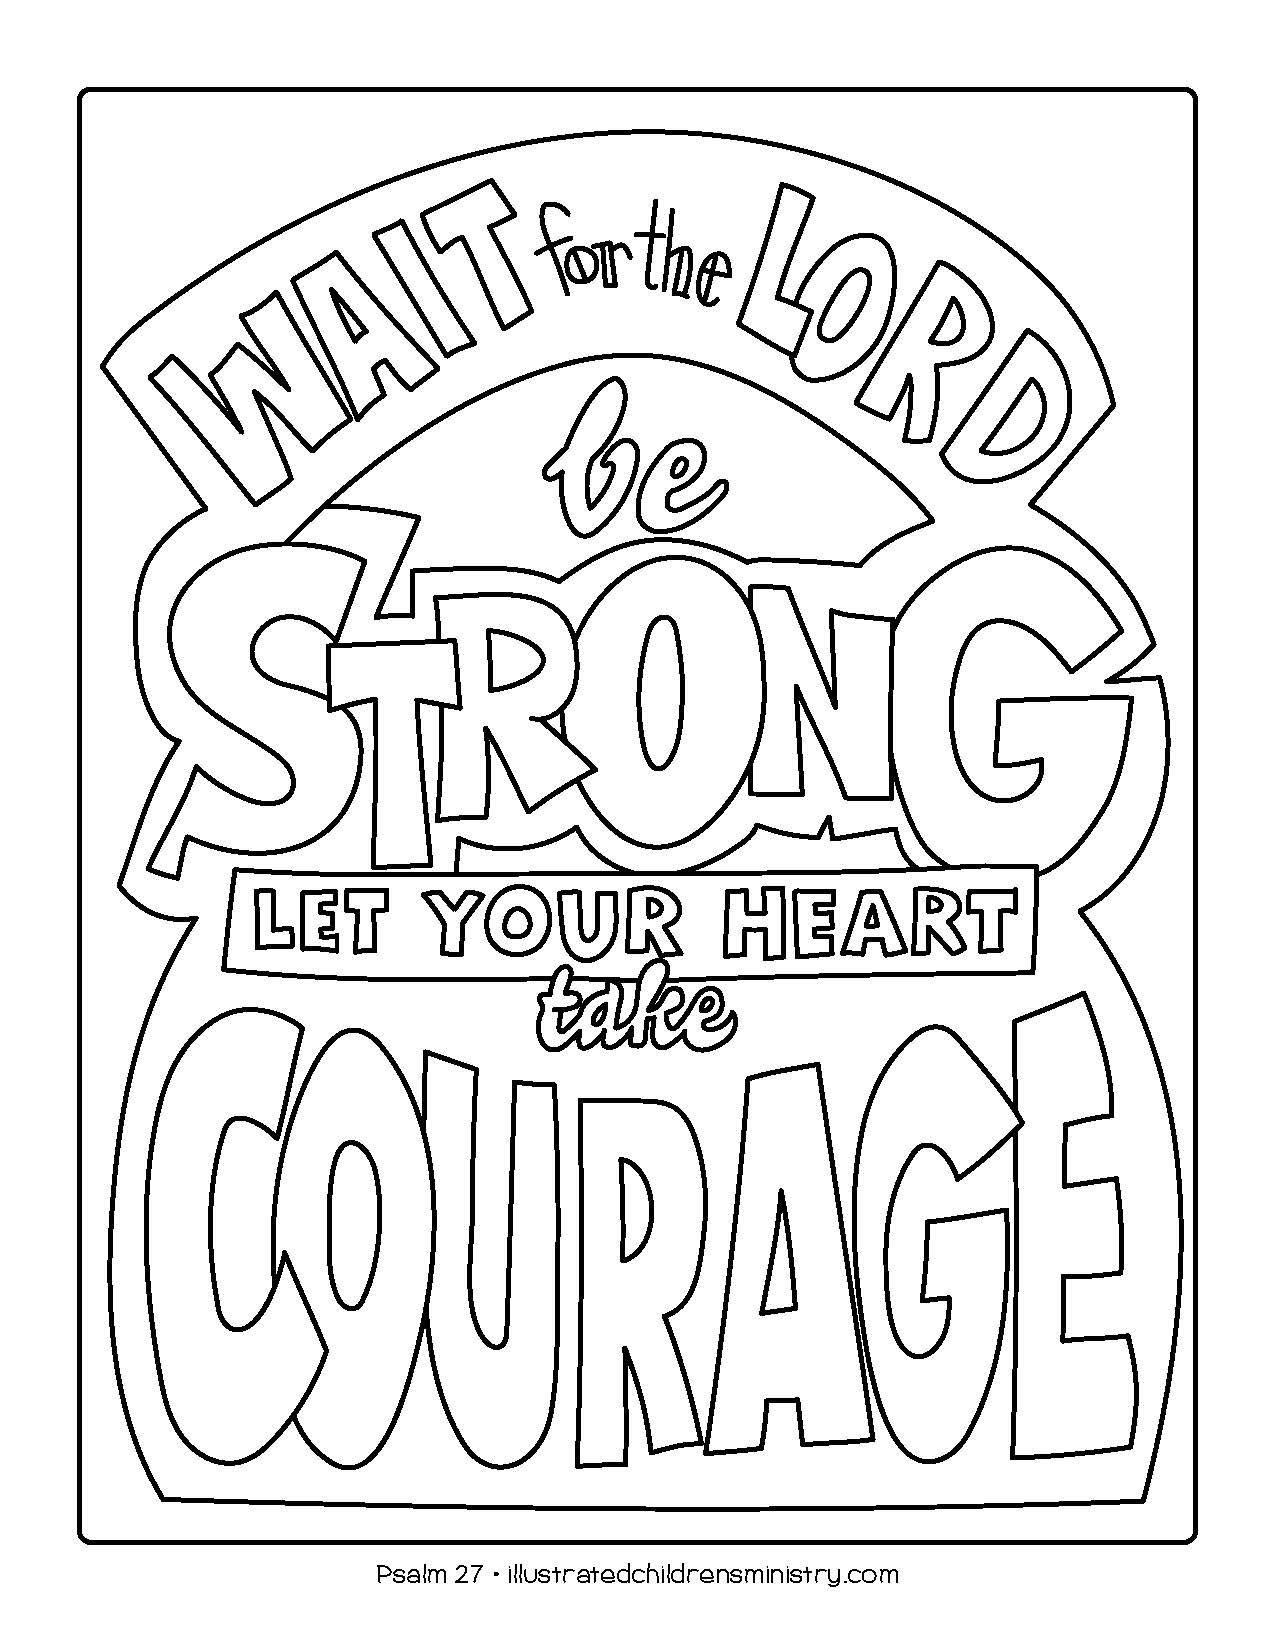 """Let your heart take courage"" coloring page"